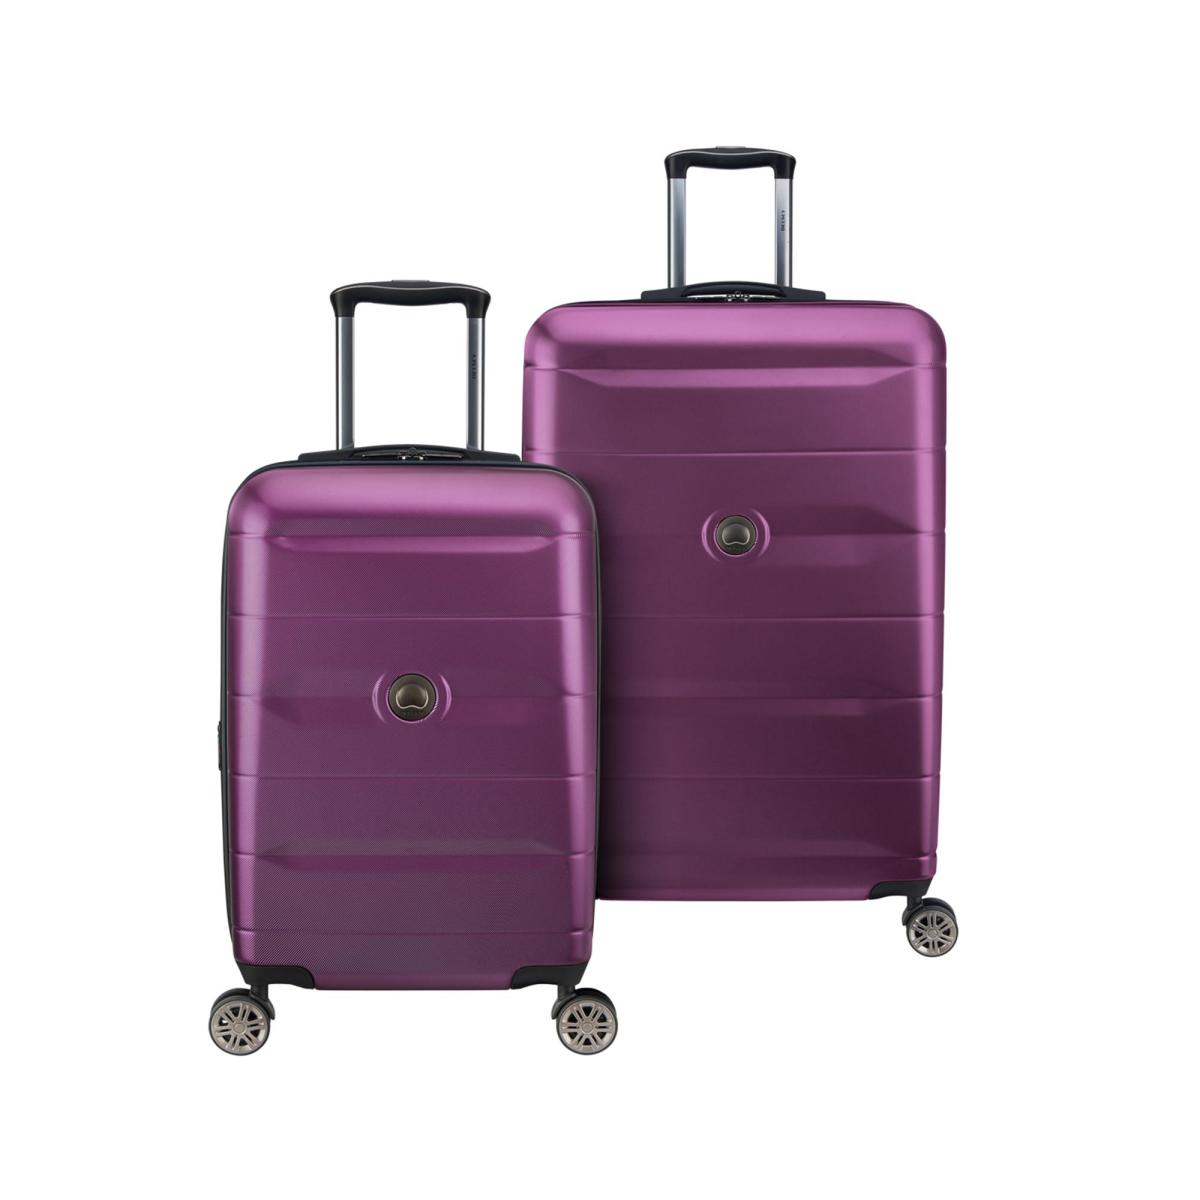 "Delsey Paris Comete 2.0 2-Piece Luggage Set (21"" & 28"")"